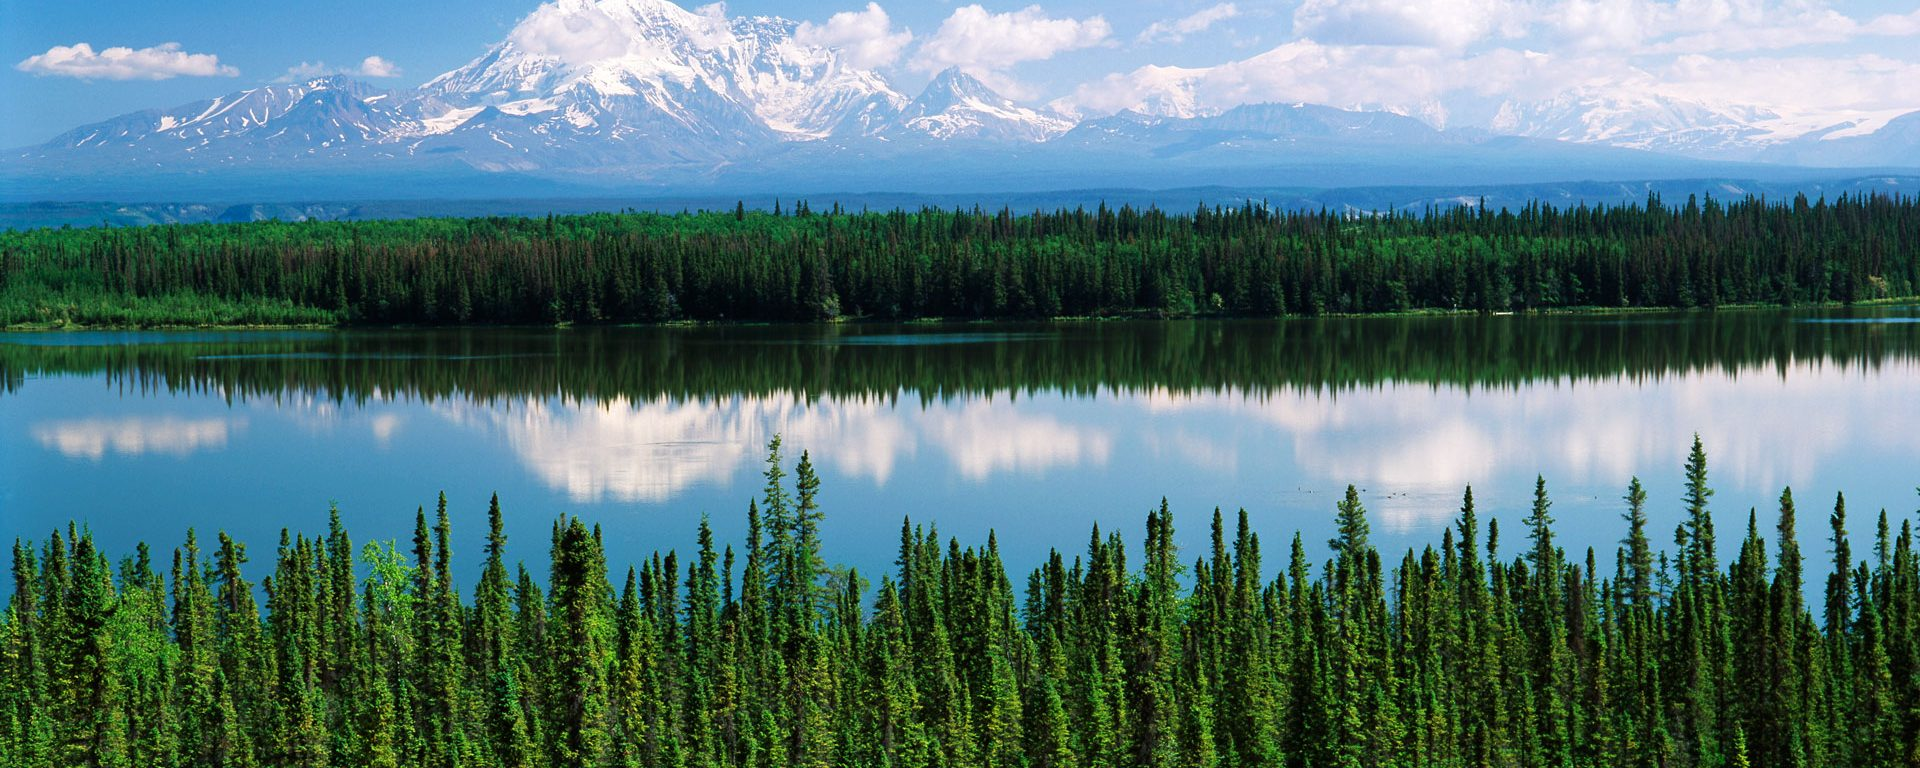 USA, Alaska, Willow lake and Mt Wrangell in Wrangell, St. Elias National Park